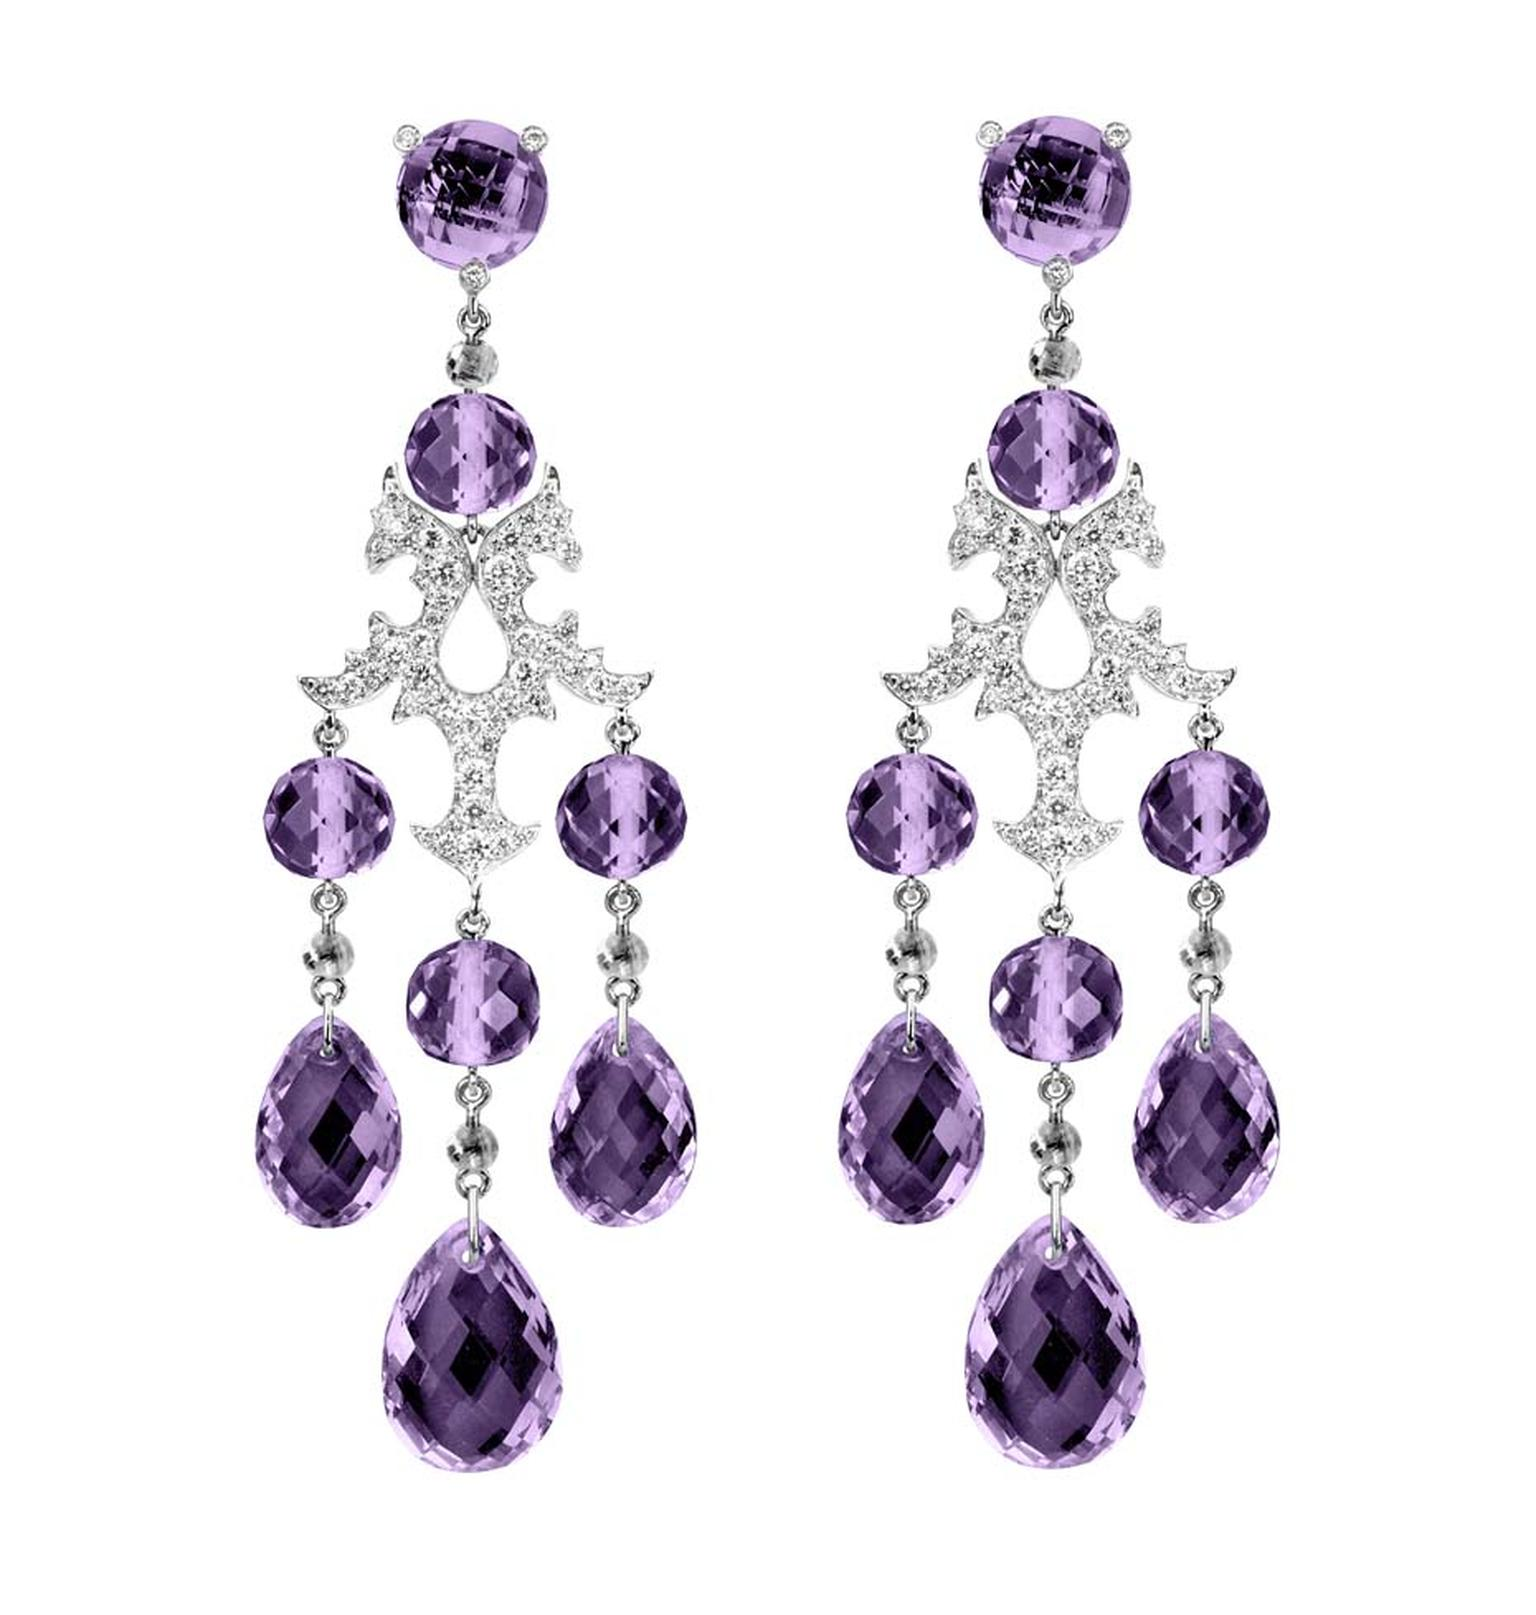 Ralph Lauren Fine Jewellery collection New Romantic amethyst and diamond earrings as worn by Margot Robbie during the Ralph Lauren charity dinner at Windsor Castle.